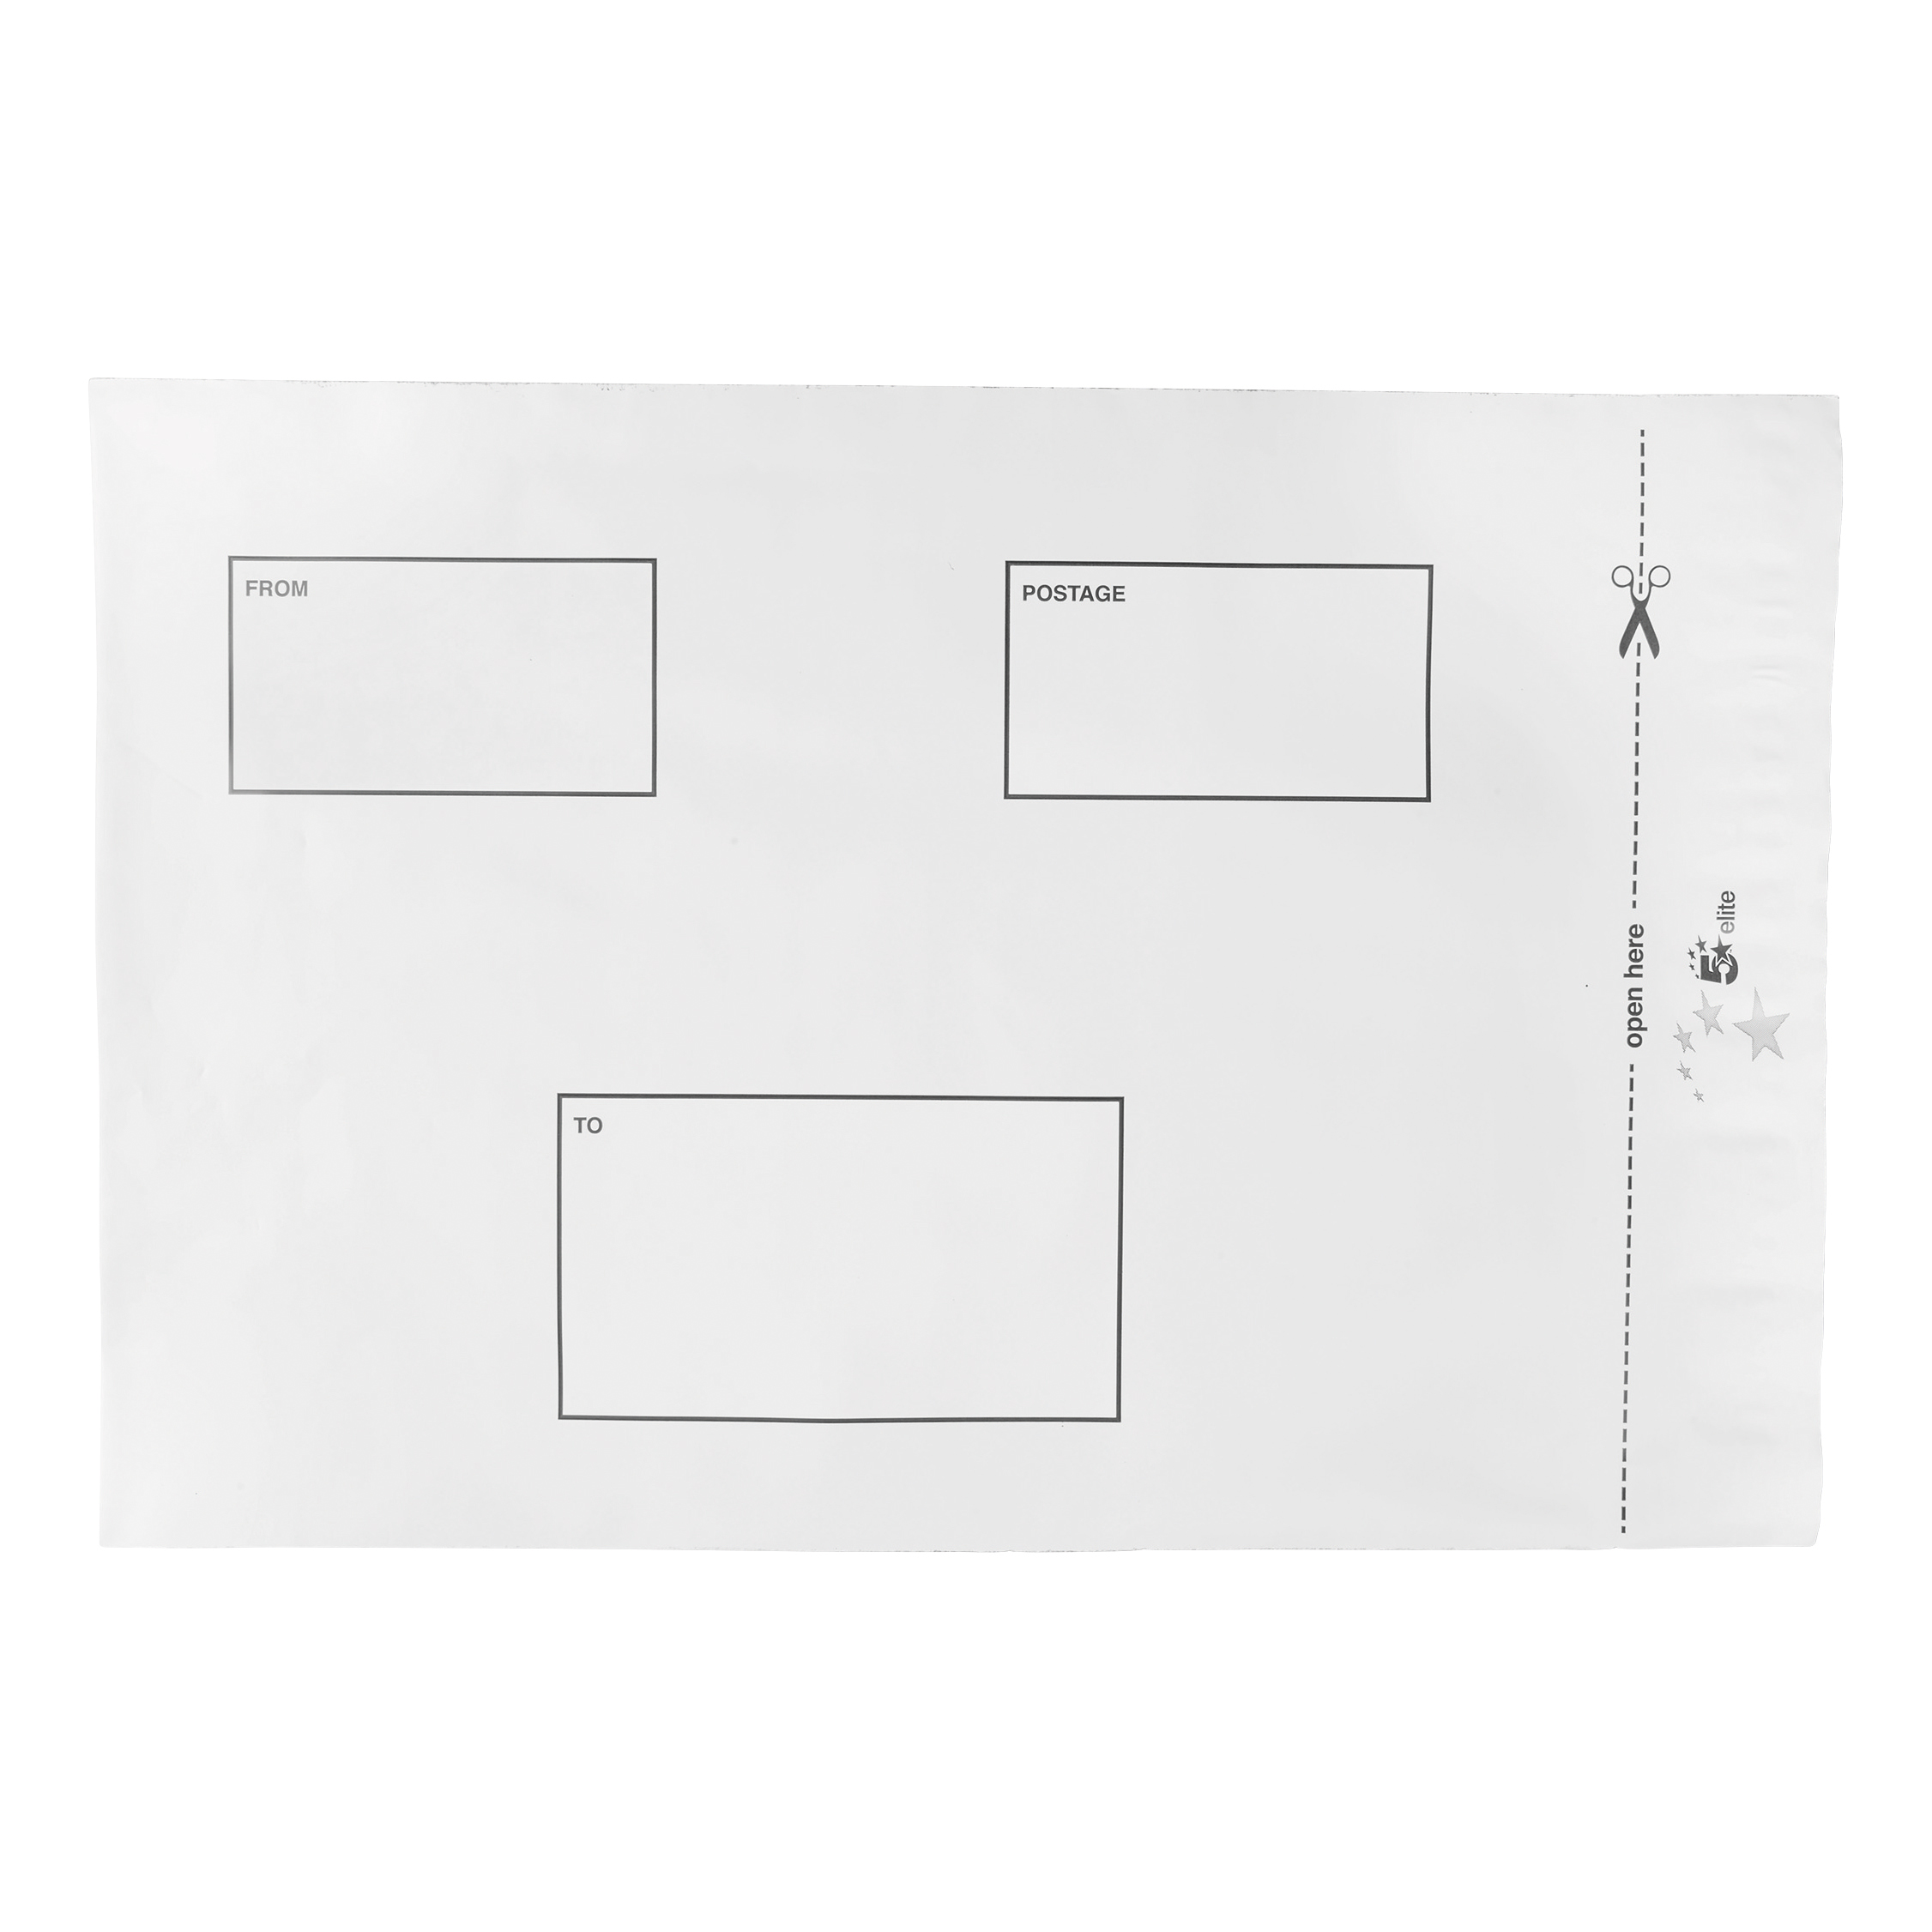 Polythene Envelopes 5 Star Elite DX Bags Self Seal Waterproof White 250x320mm &50mm Flap [Pack 100]